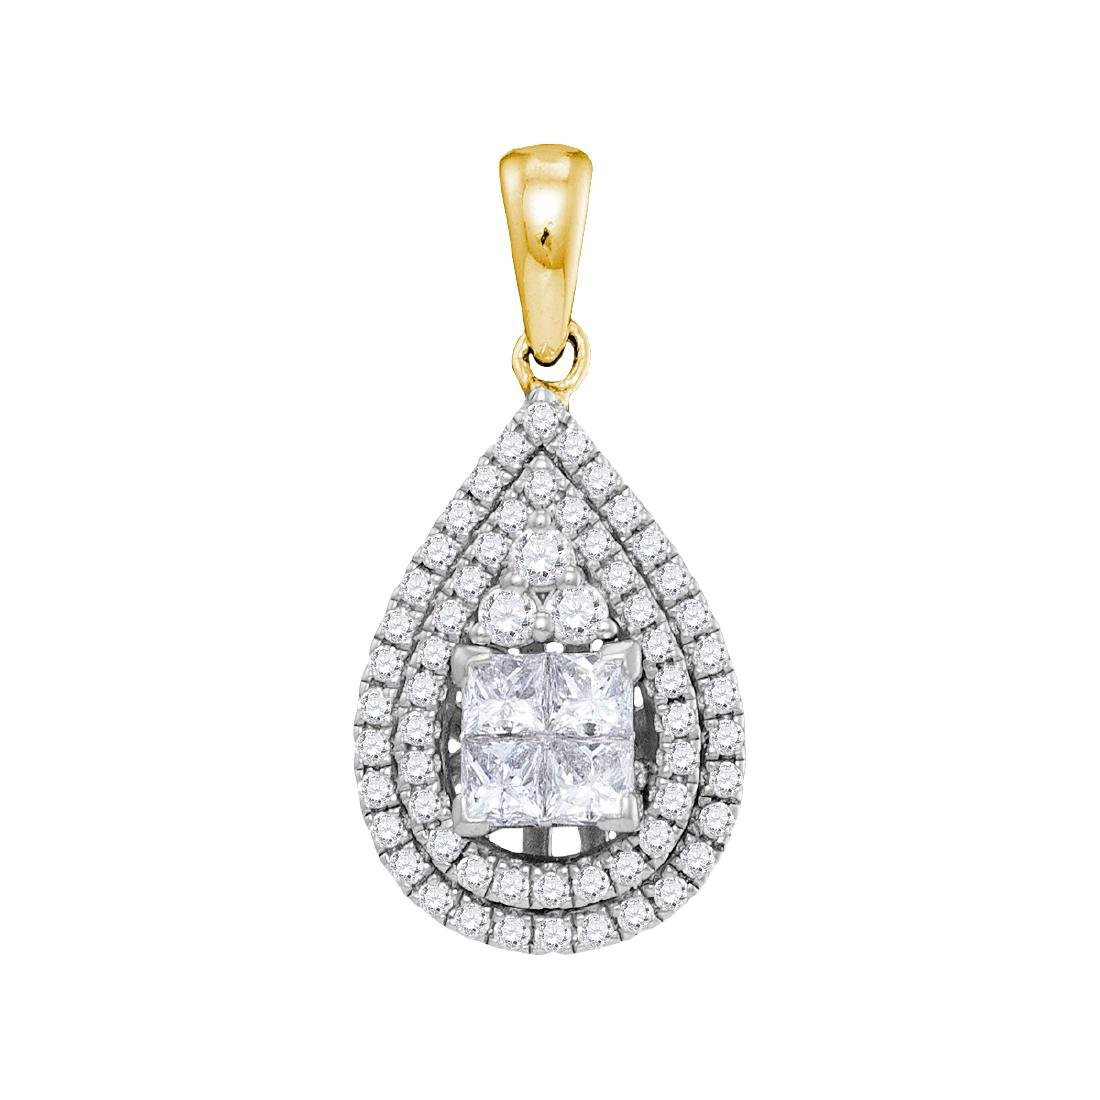 1.01 CTW Princess Diamond Teardrop Cluster Pendant 14KT